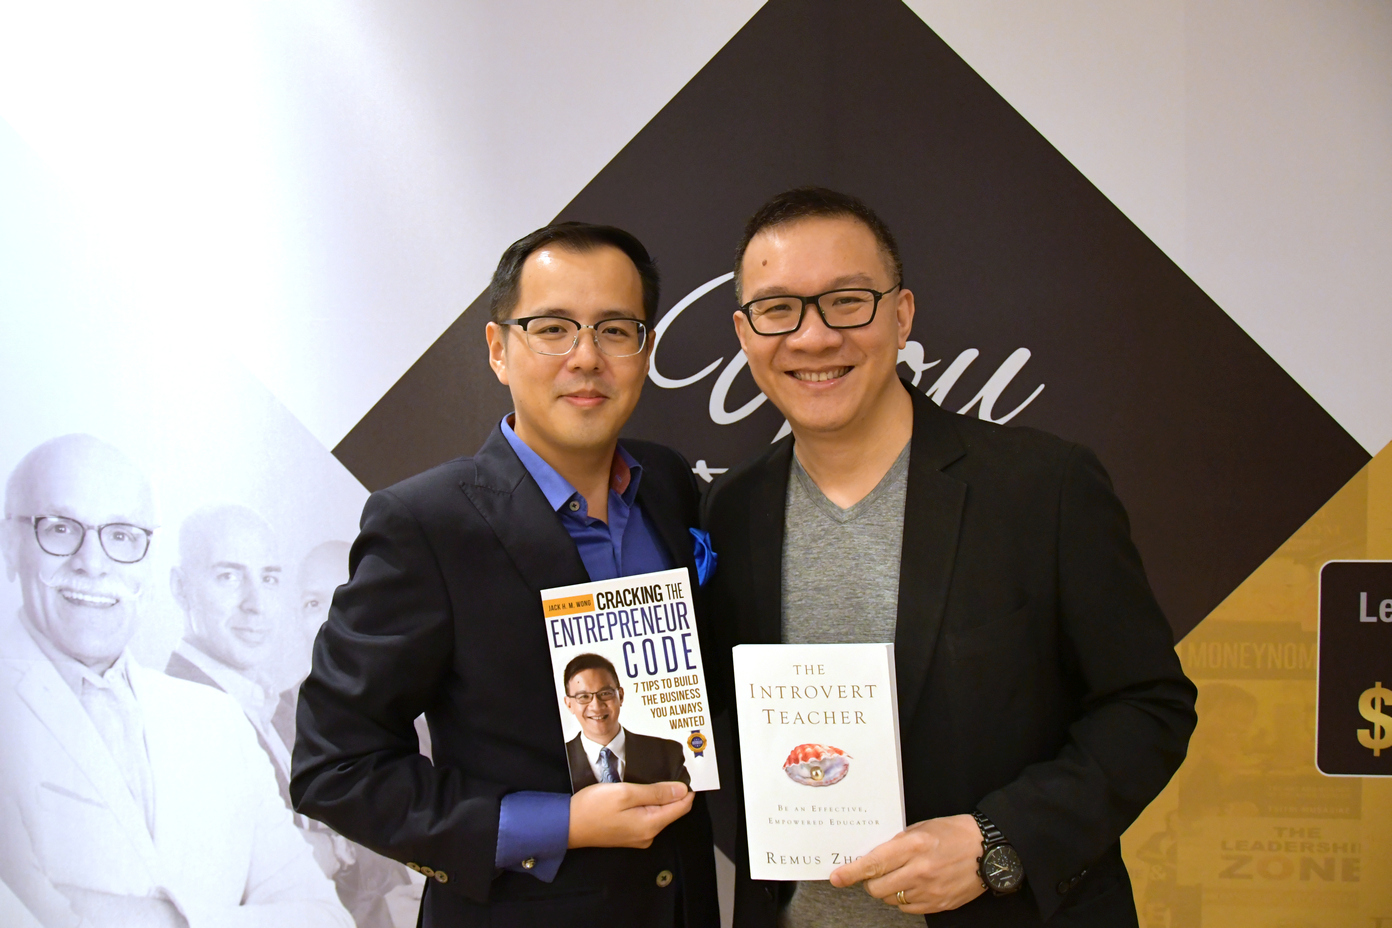 Jack Wong , Author of  Cracking the Entrepreneur Code